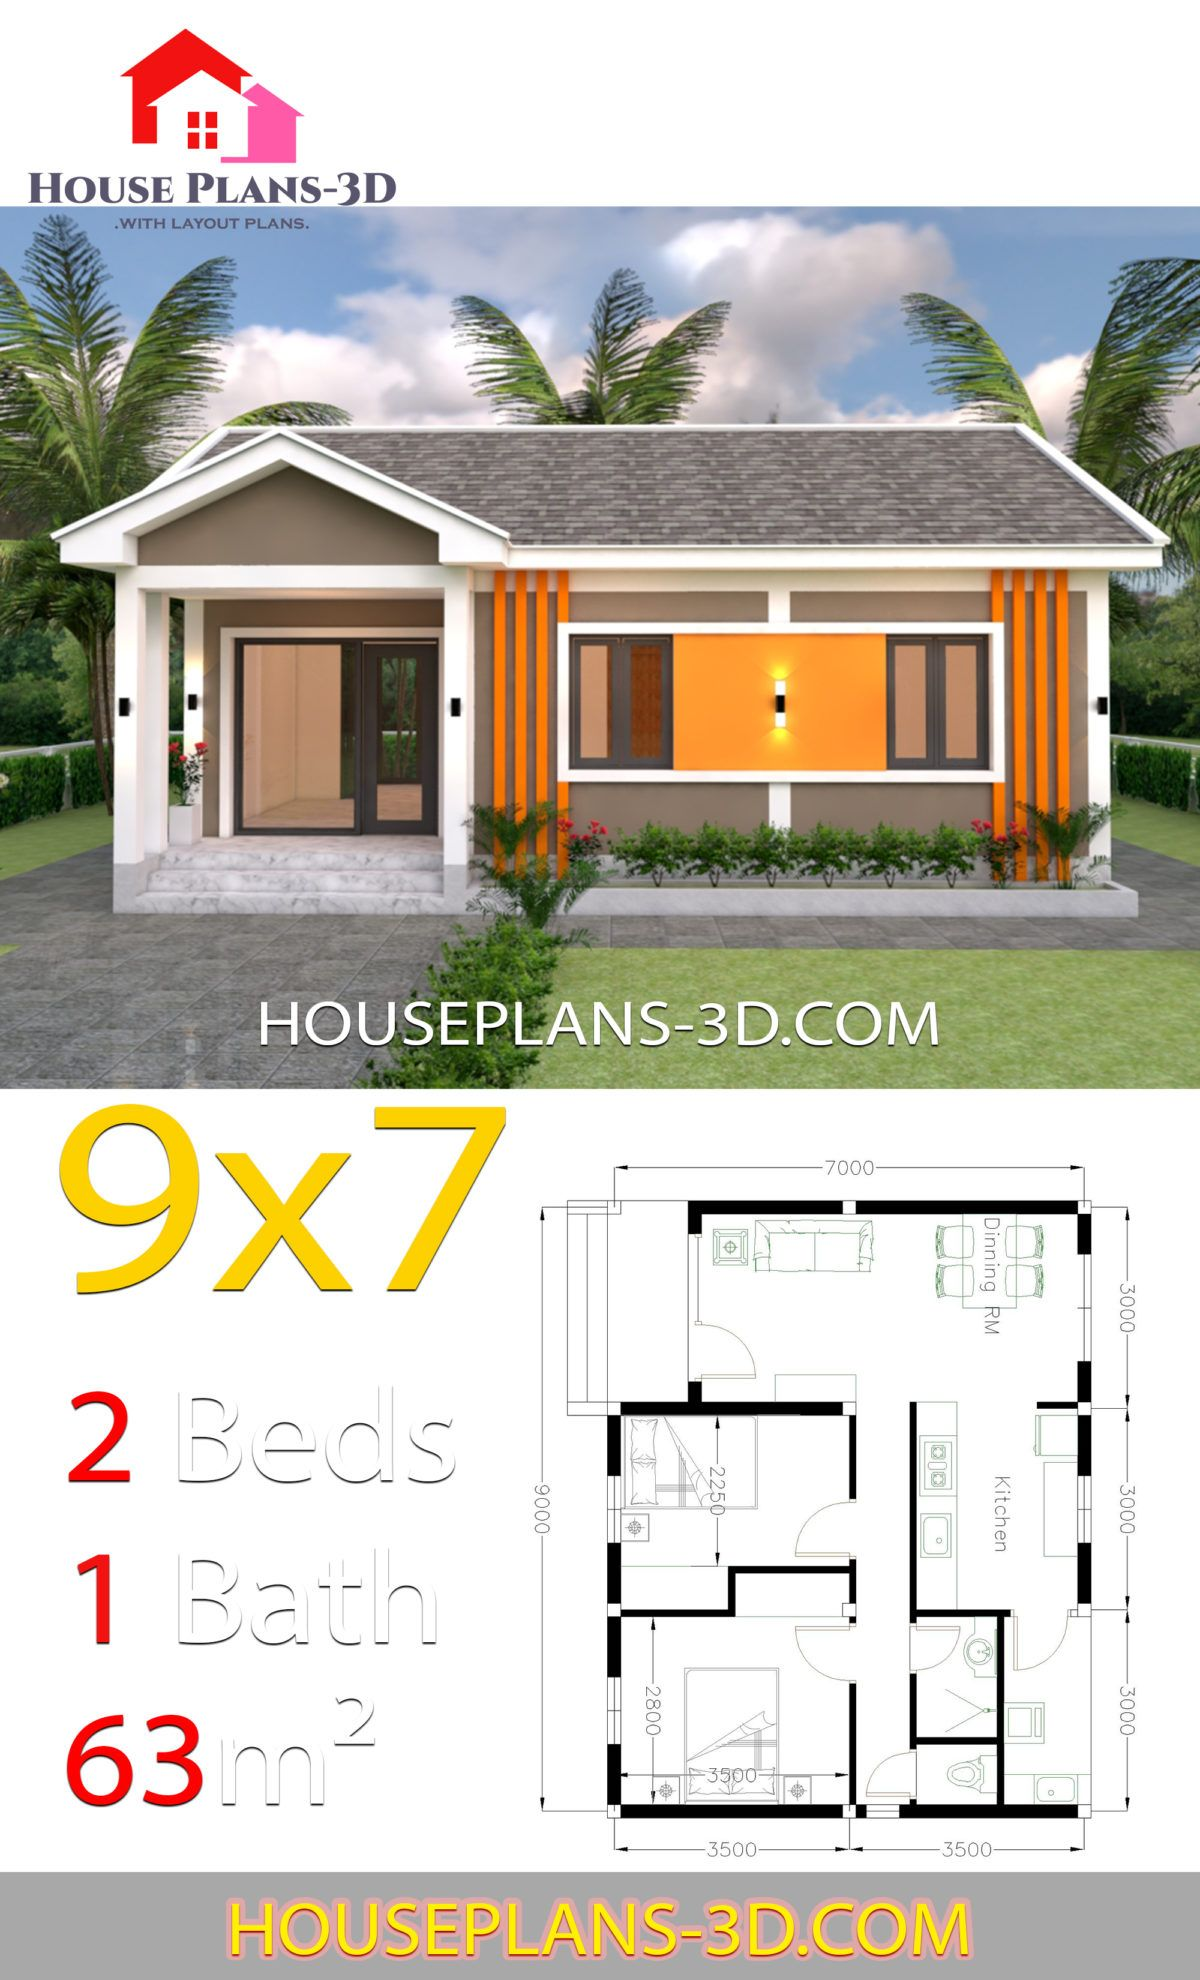 House Plans 9x7 With 2 Bedrooms Gable Roof House Plans 3d Gable Roof House Bungalow House Plans House Plans